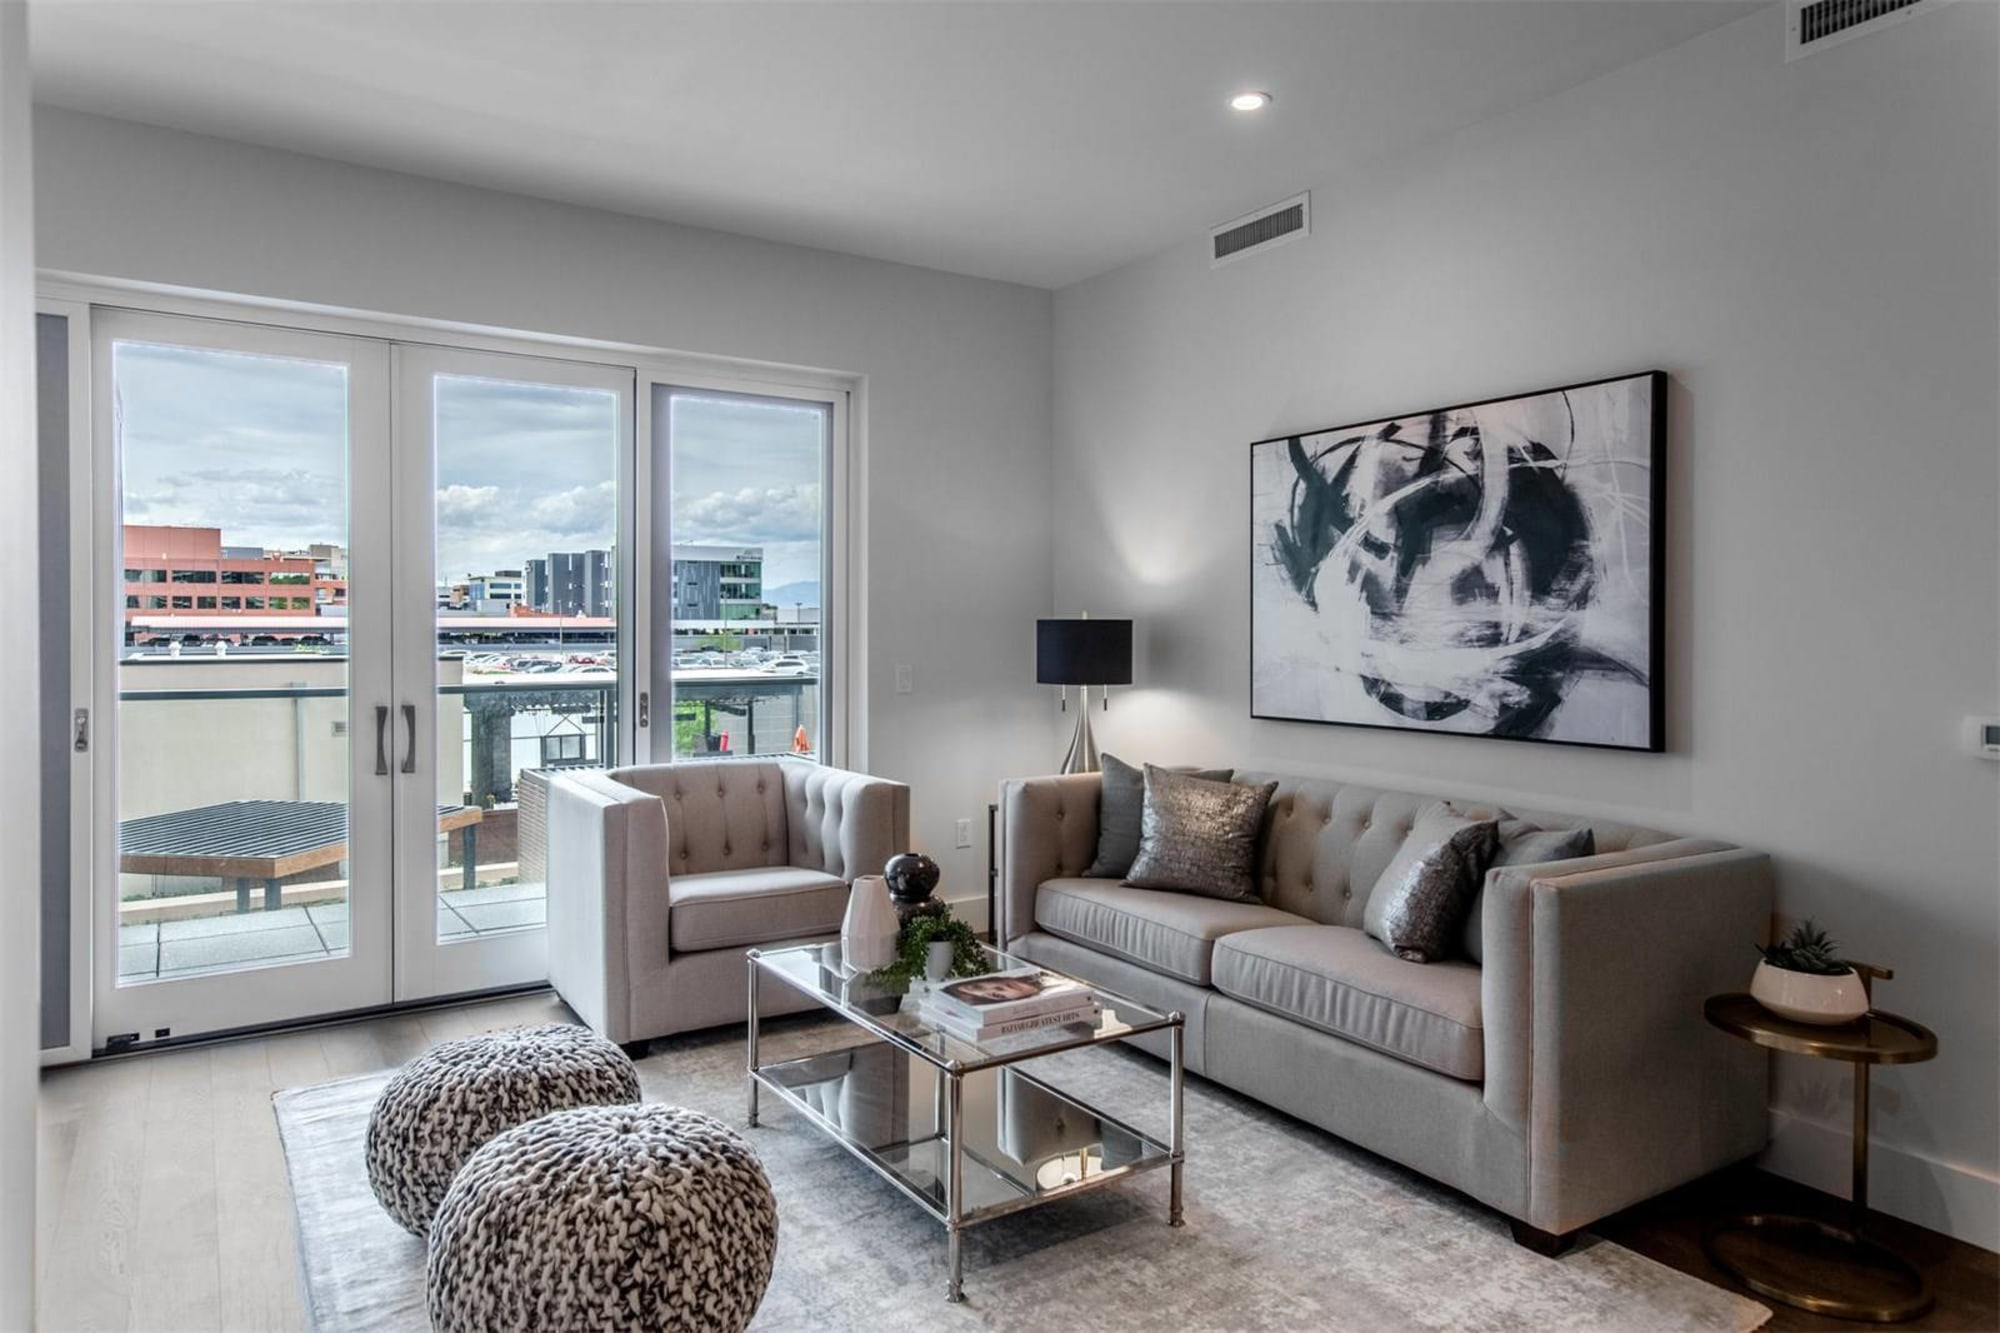 HIGH END RESIDENCE IN CHERRY CREEK